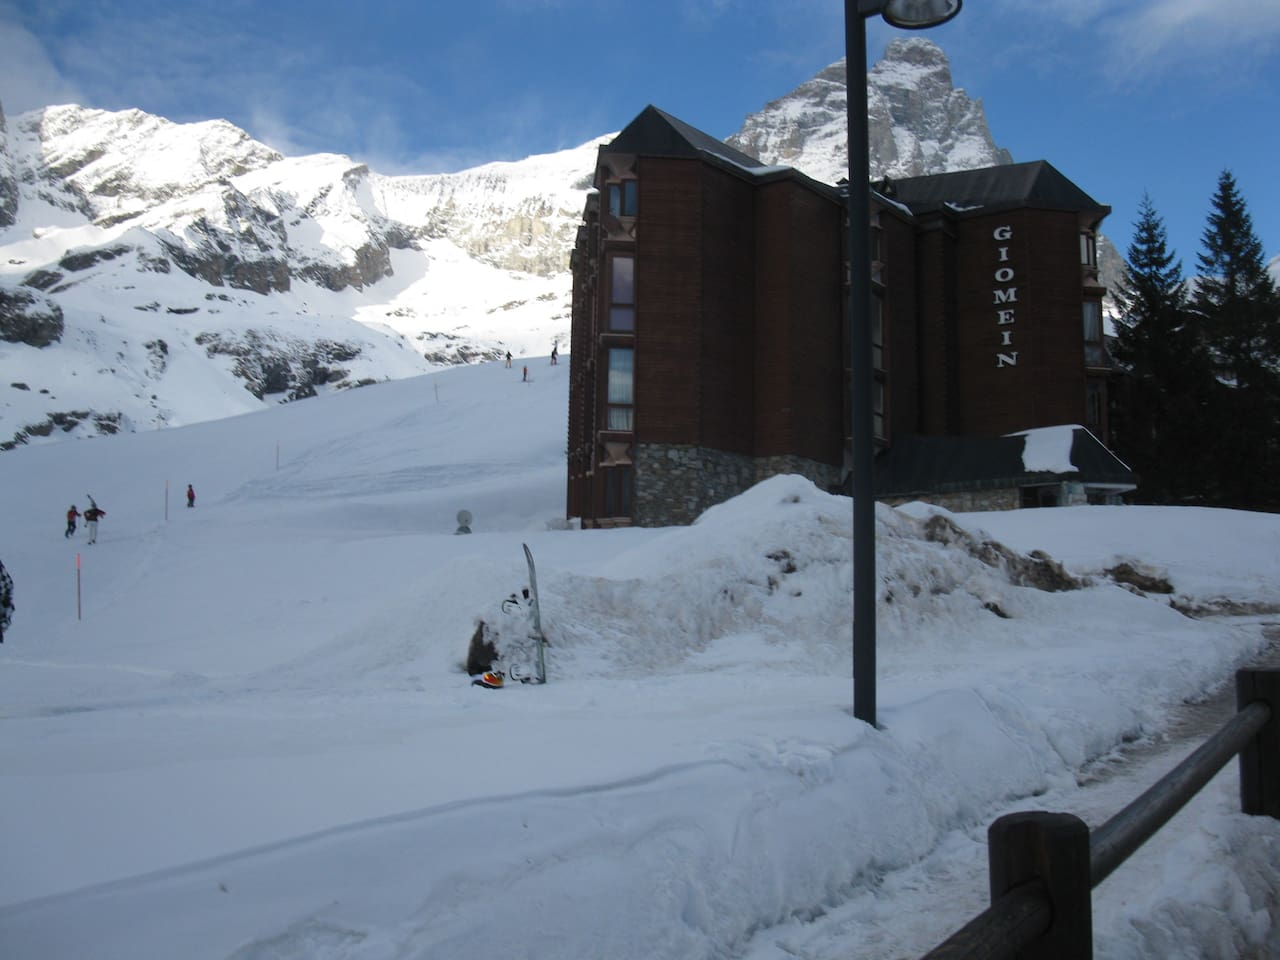 Skiing close the building